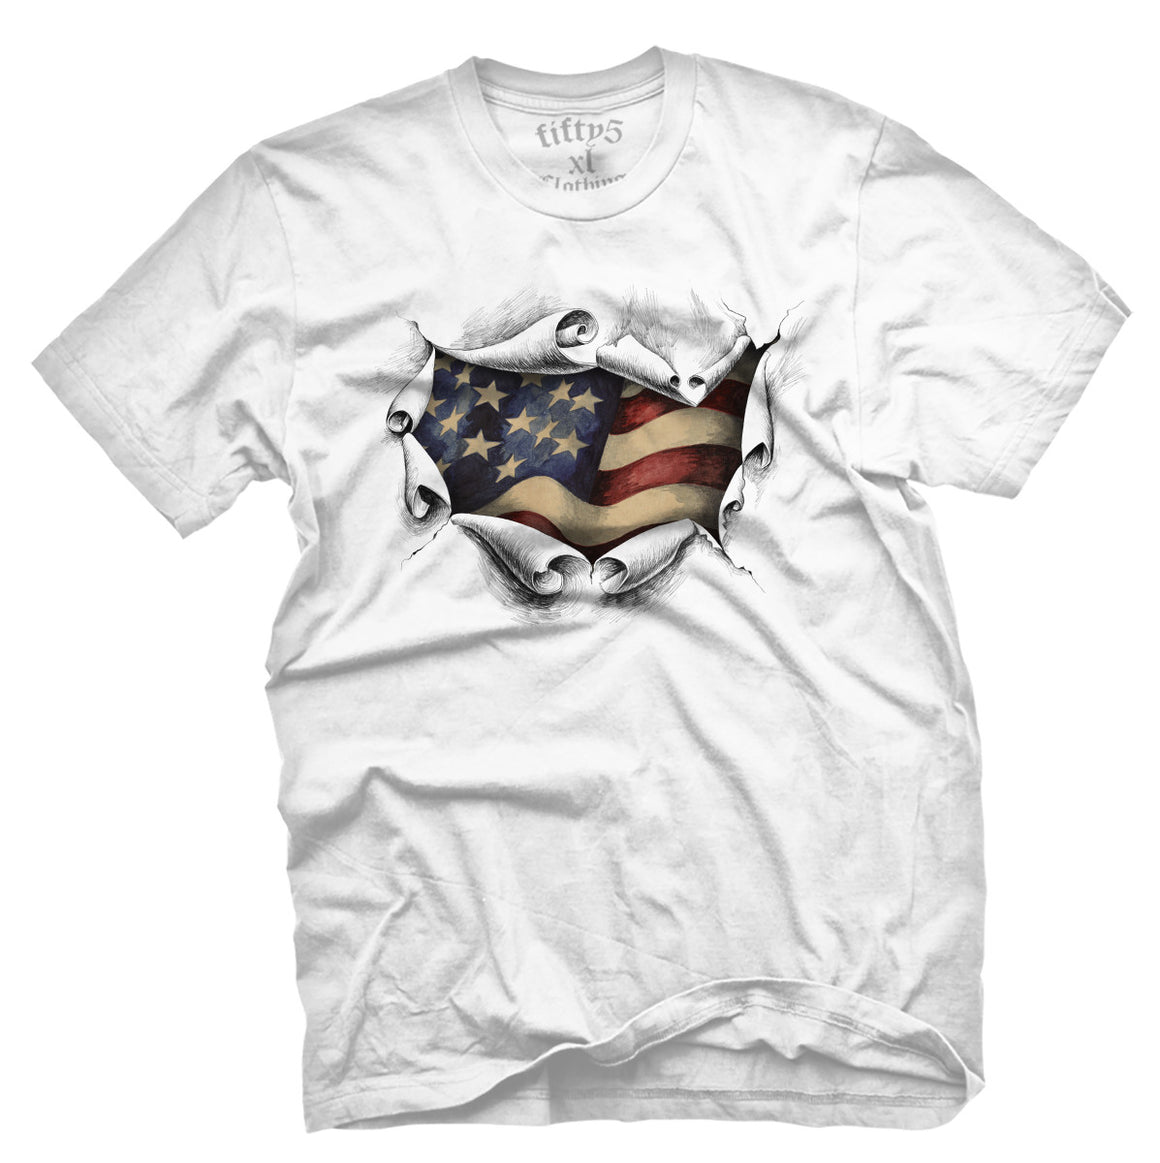 Fifty5 Clothing American Men's T Shirt